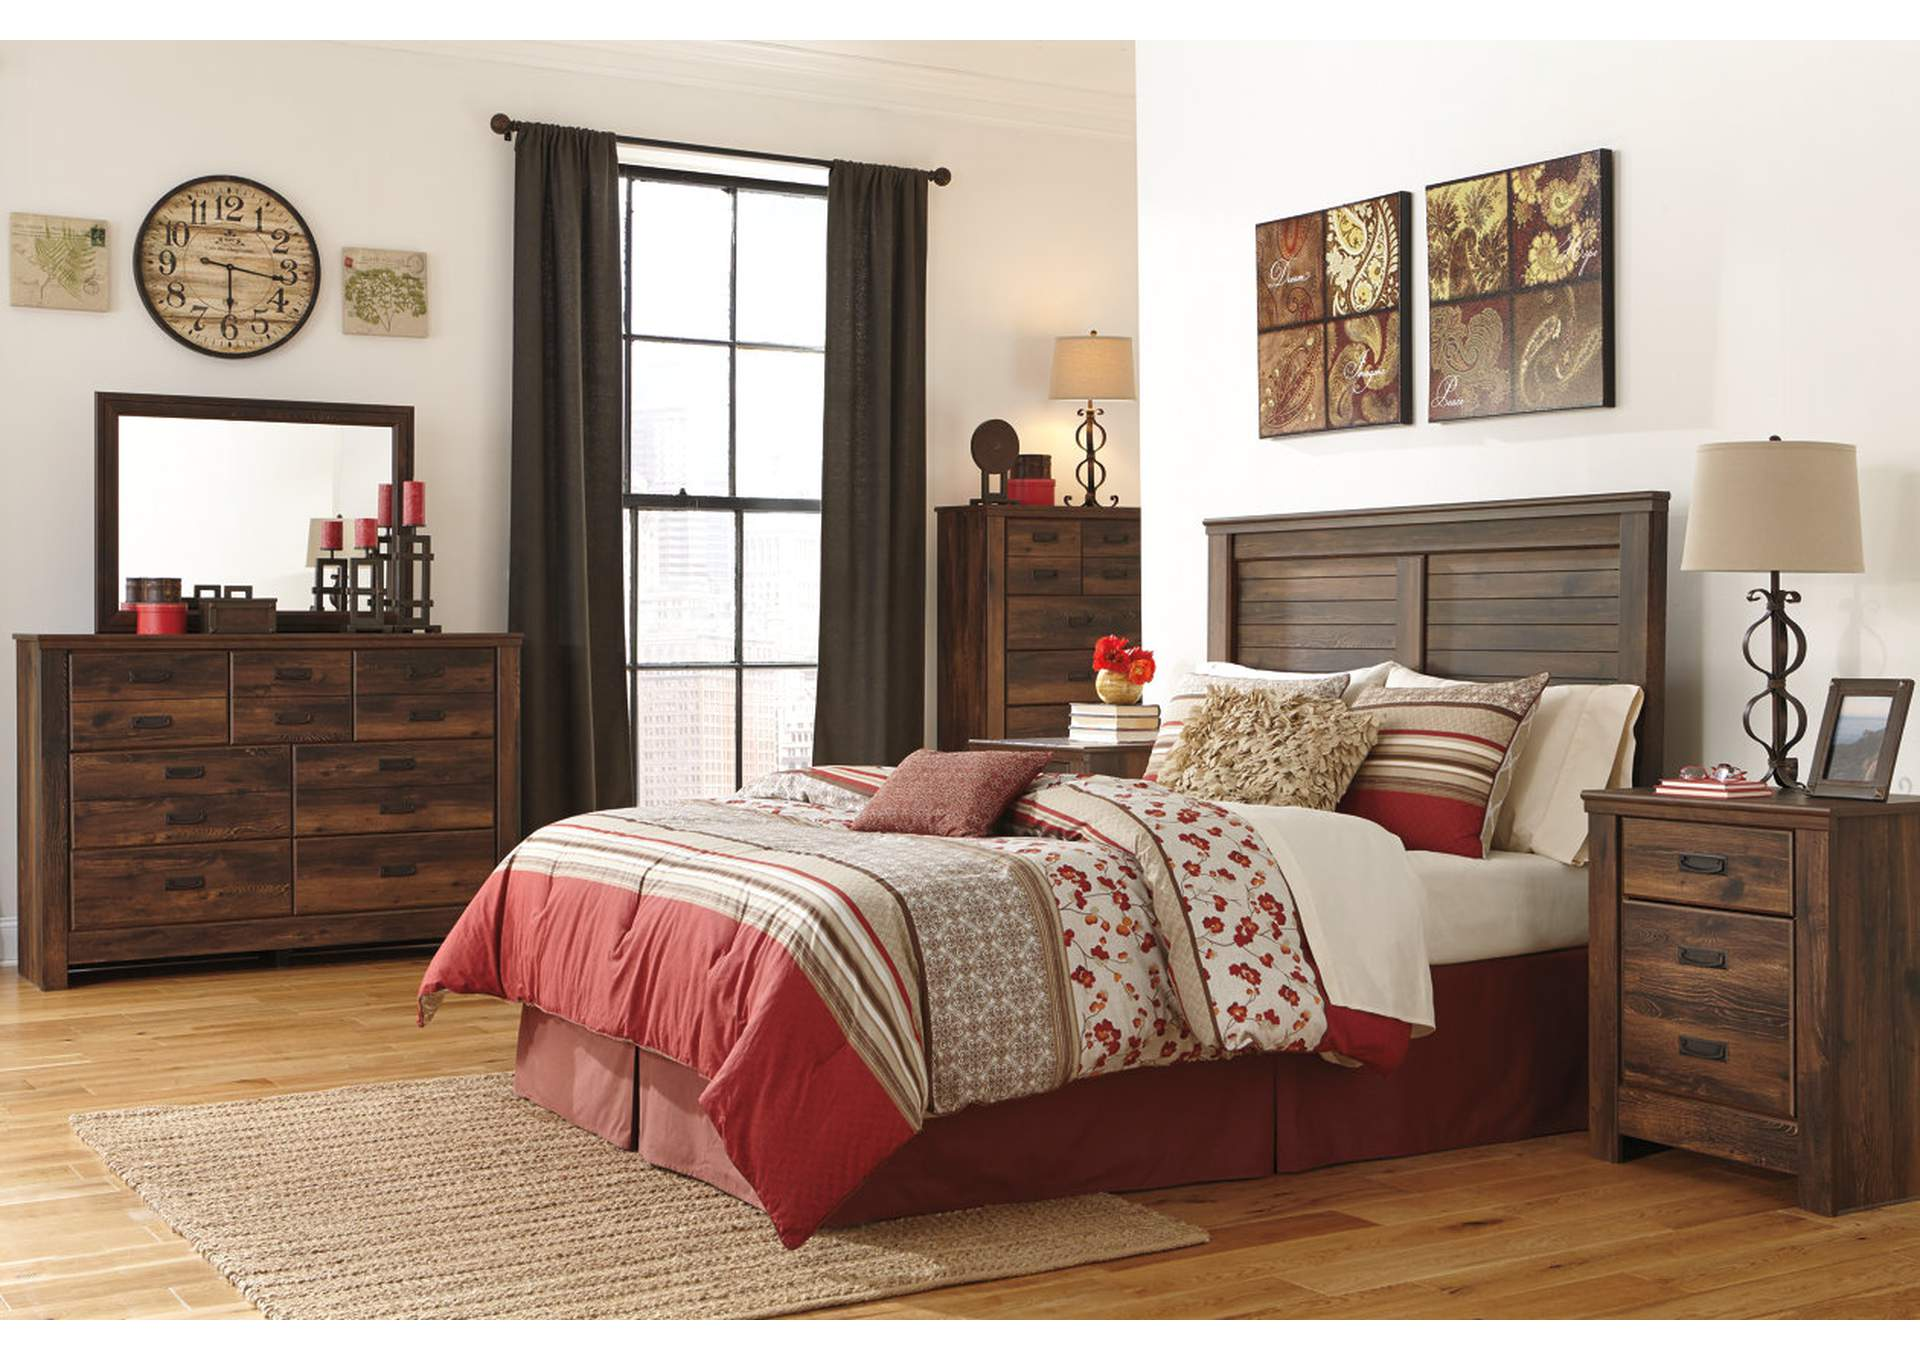 Quinden King Panel Headboard w/Dresser, Mirror, Drawer Chest & Nightstand,Signature Design By Ashley